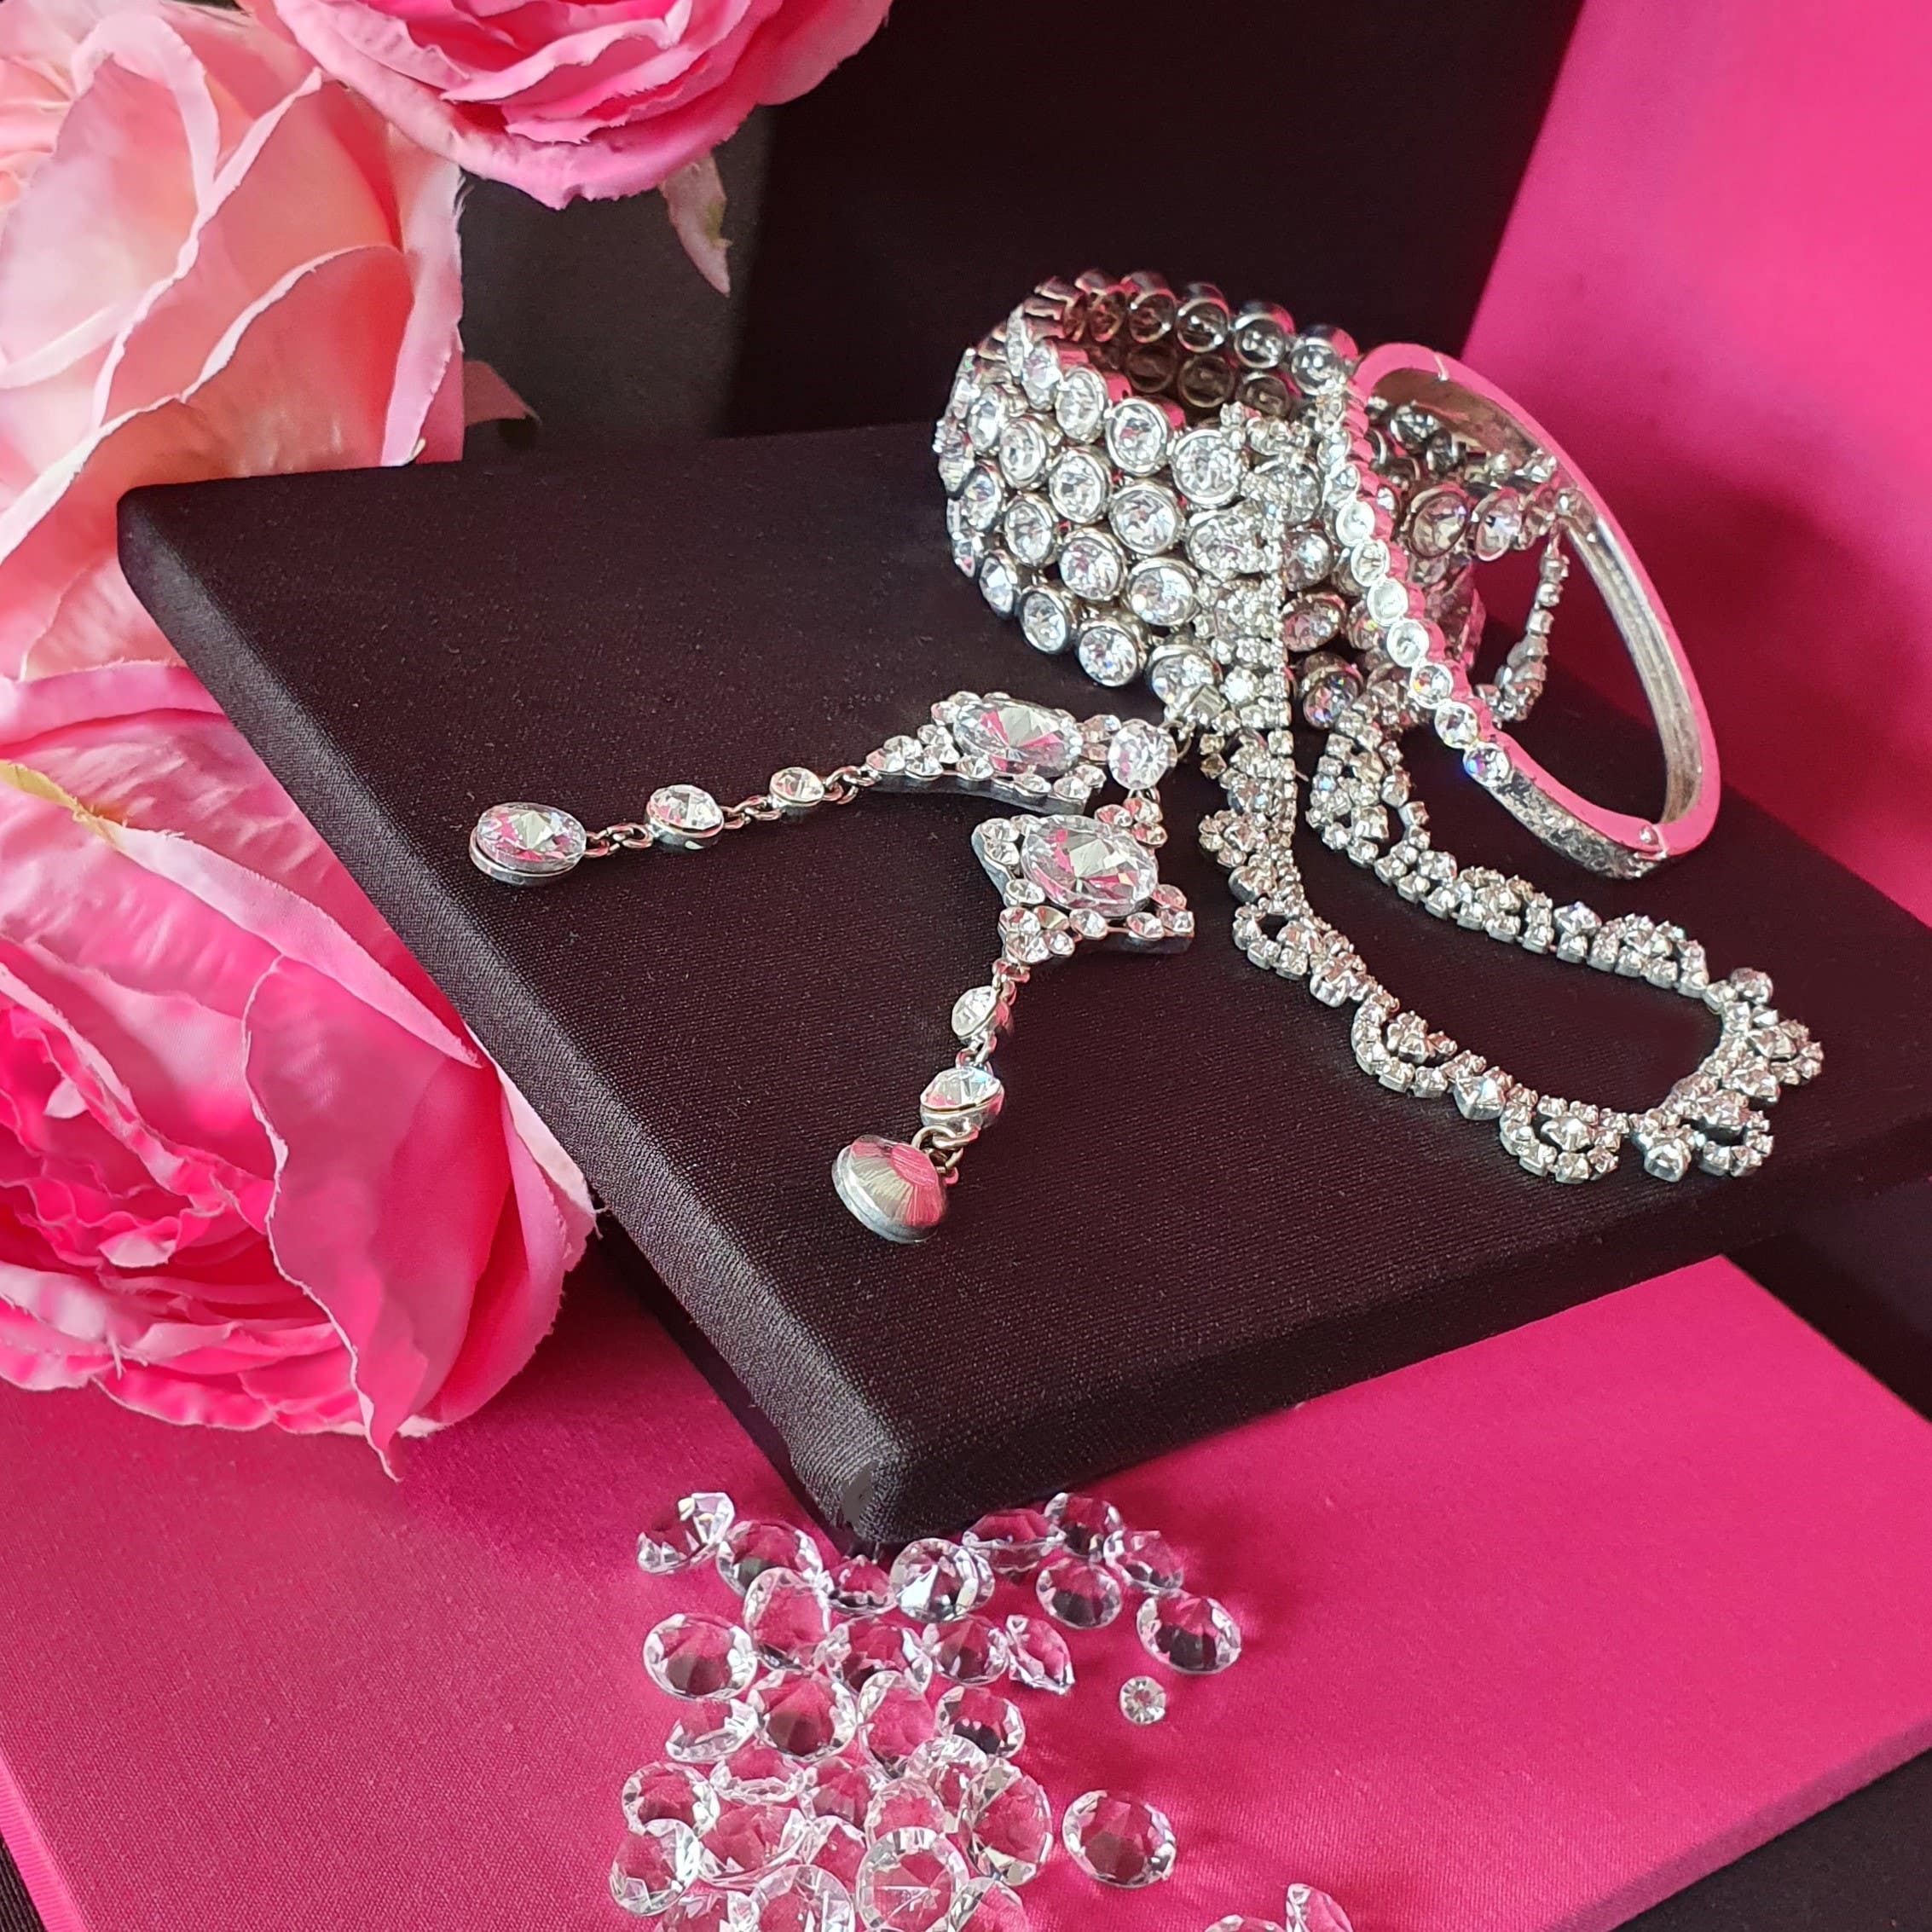 Introducing merchandise of diamond jewellery to the themed group